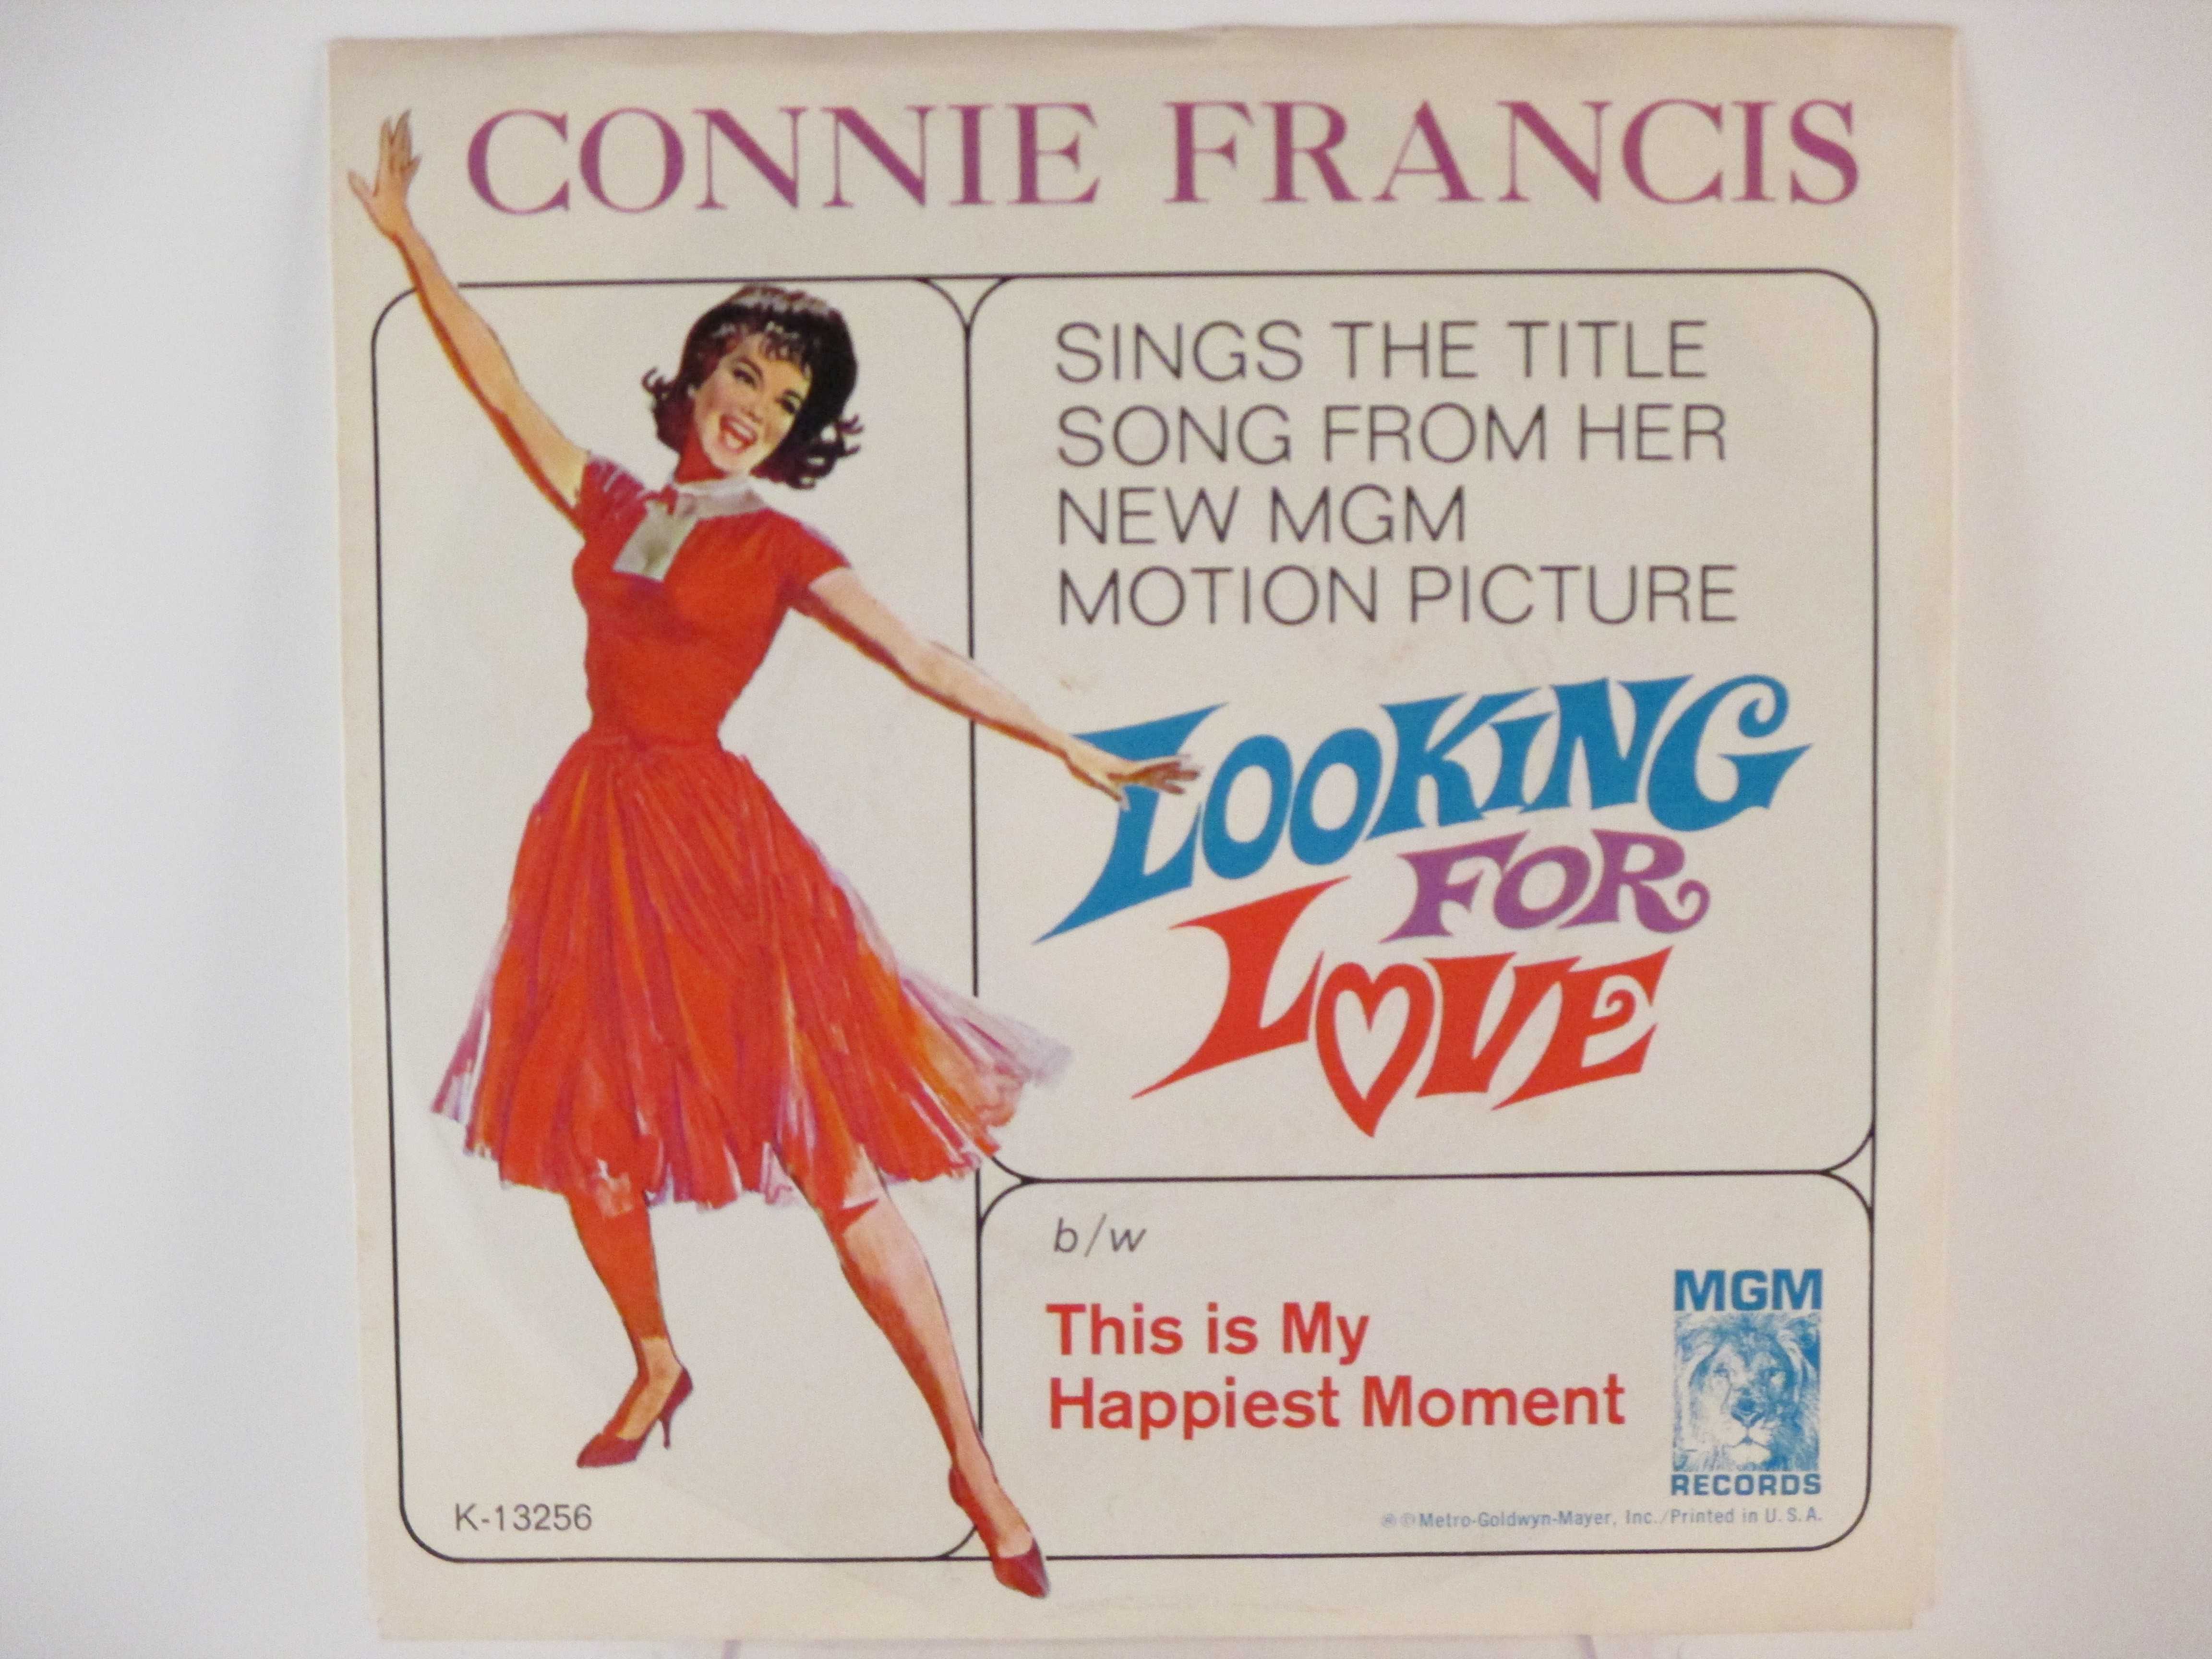 CONNIE FRANCIS : Looking for love / This is my happiest moment